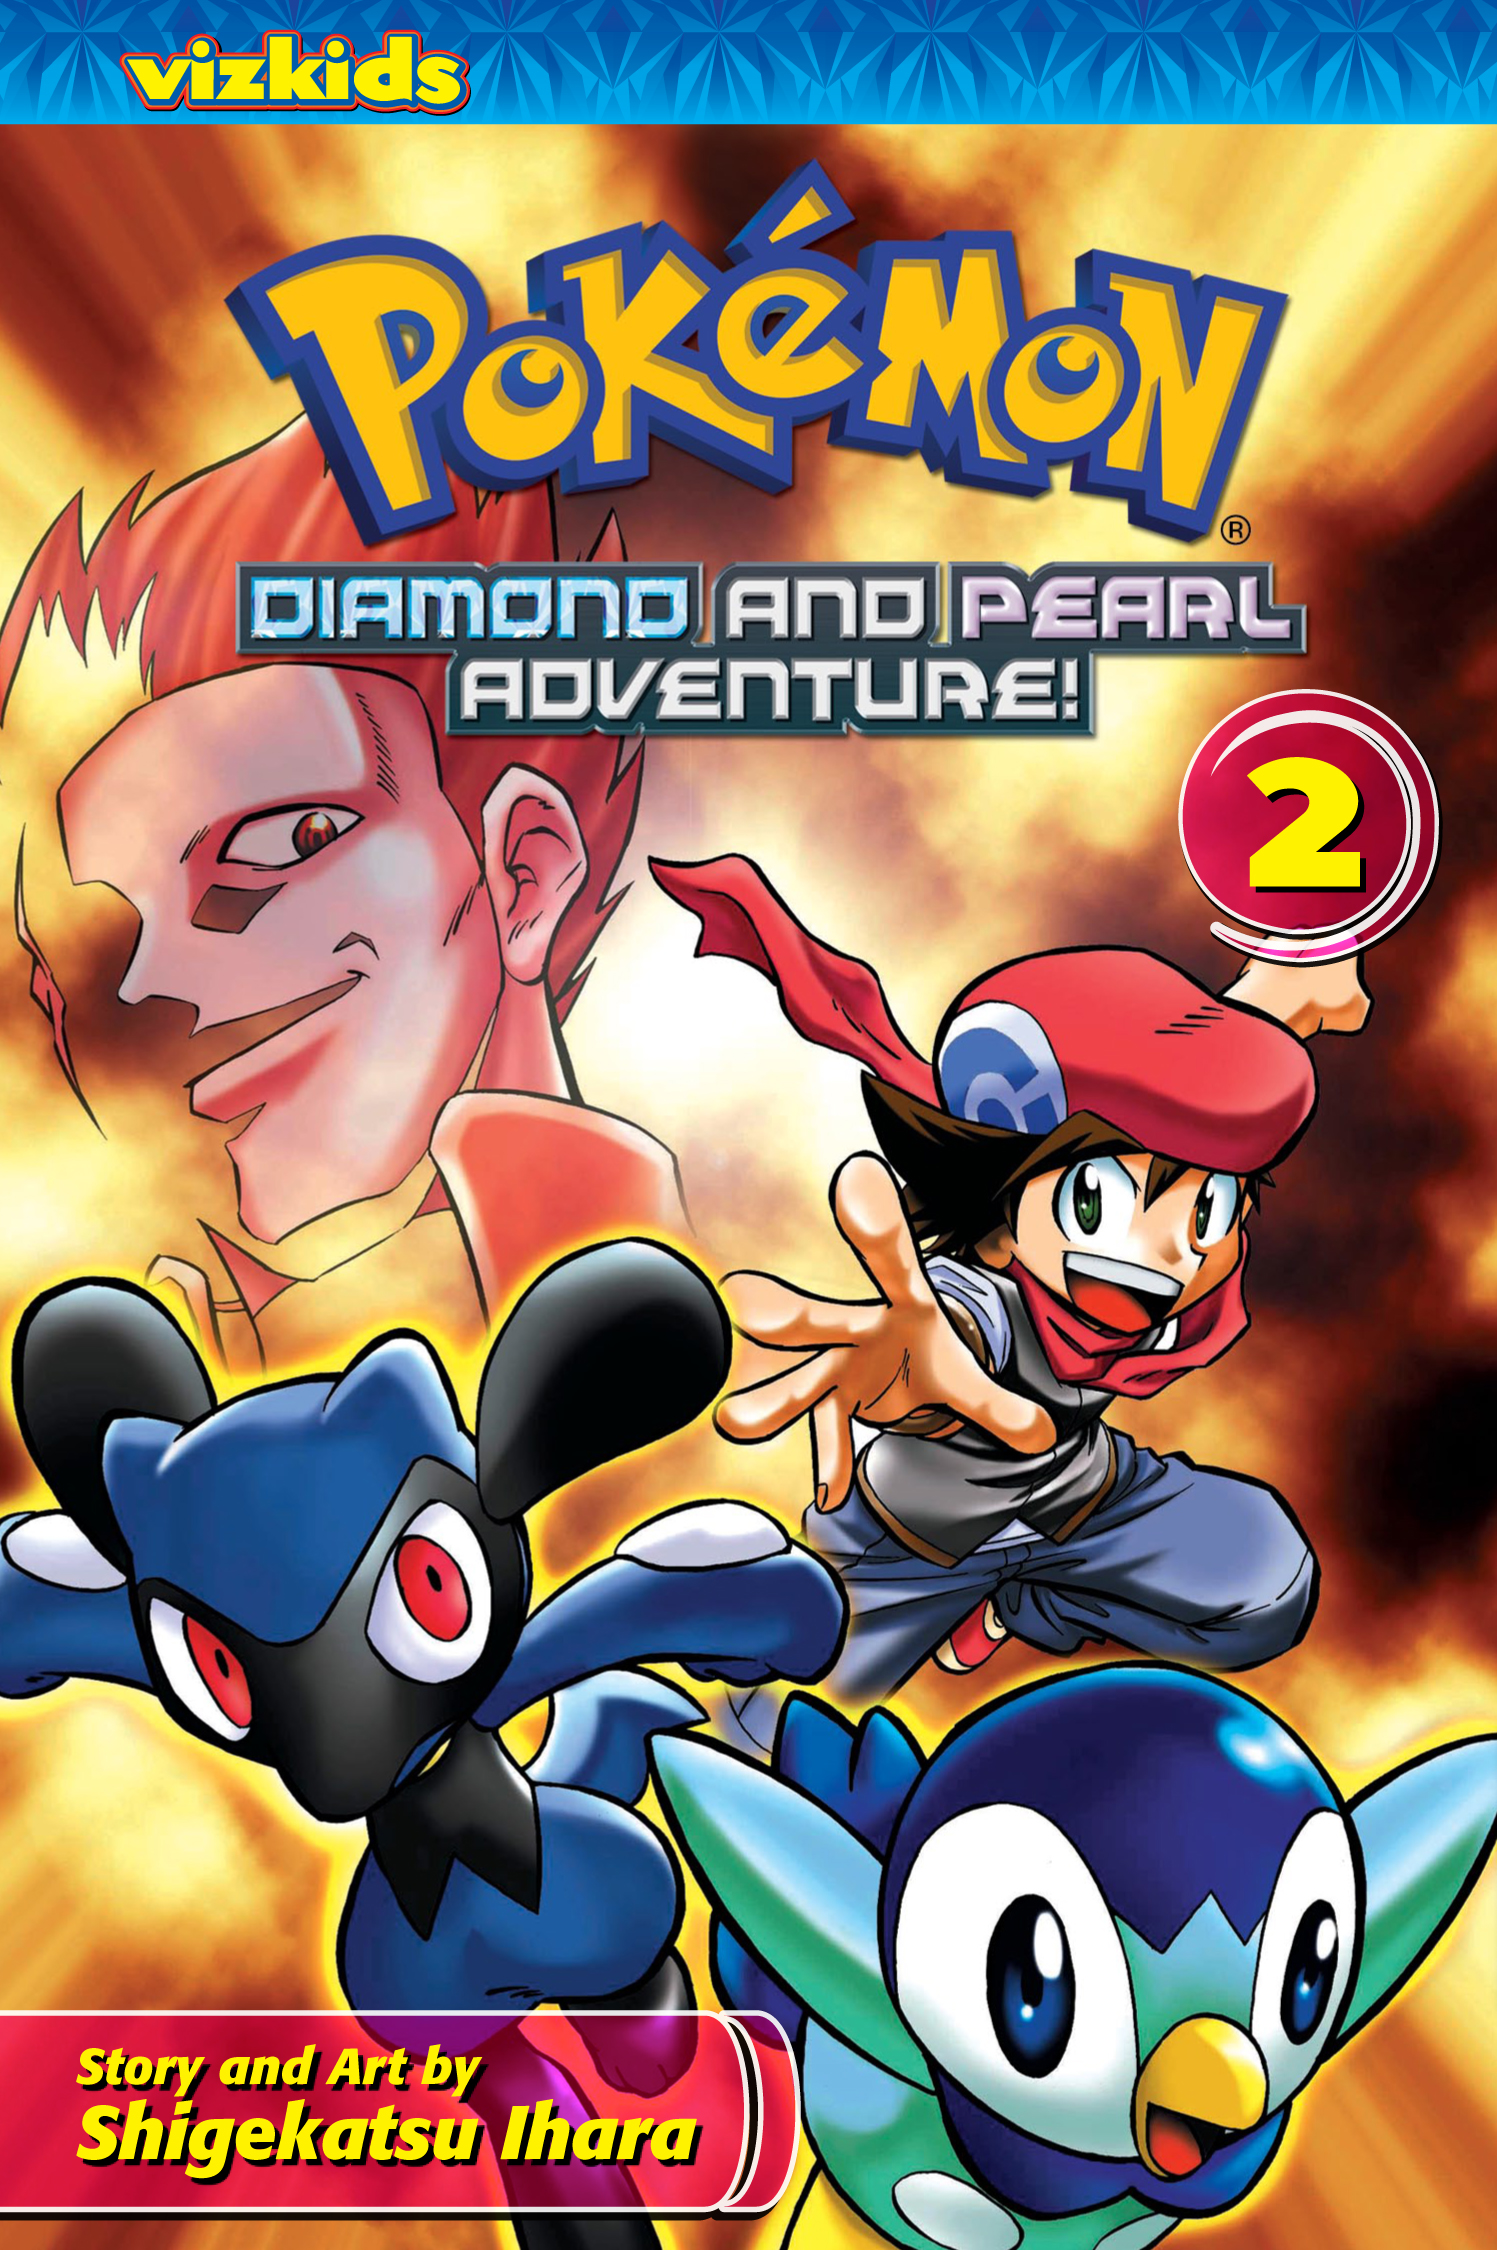 pokémon diamond and pearl adventure!: volume 2 | pokémon wiki